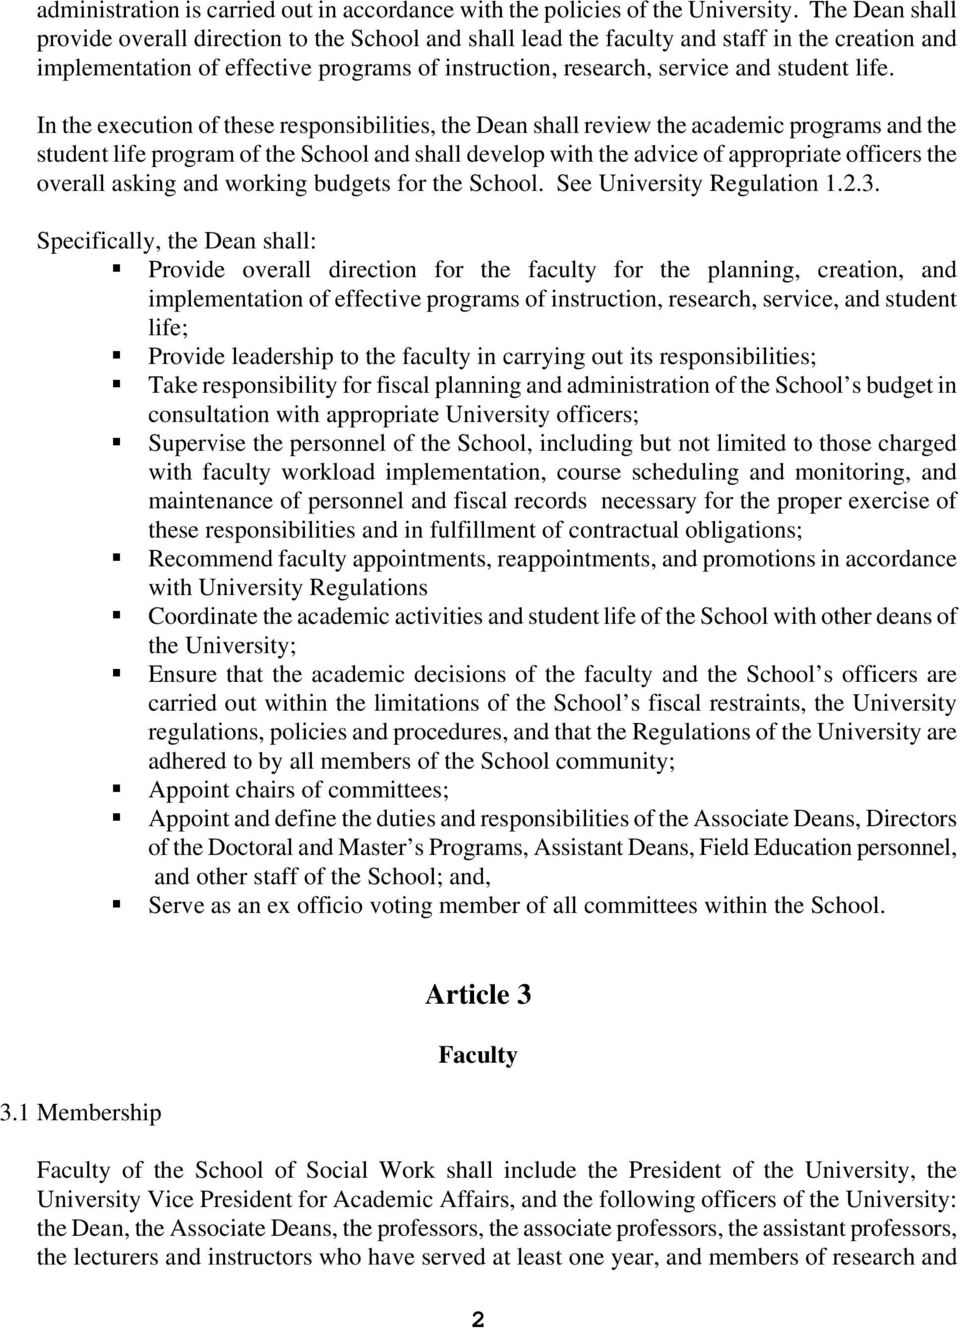 In the execution of these responsibilities, the Dean shall review the academic programs and the student life program of the School and shall develop with the advice of appropriate officers the